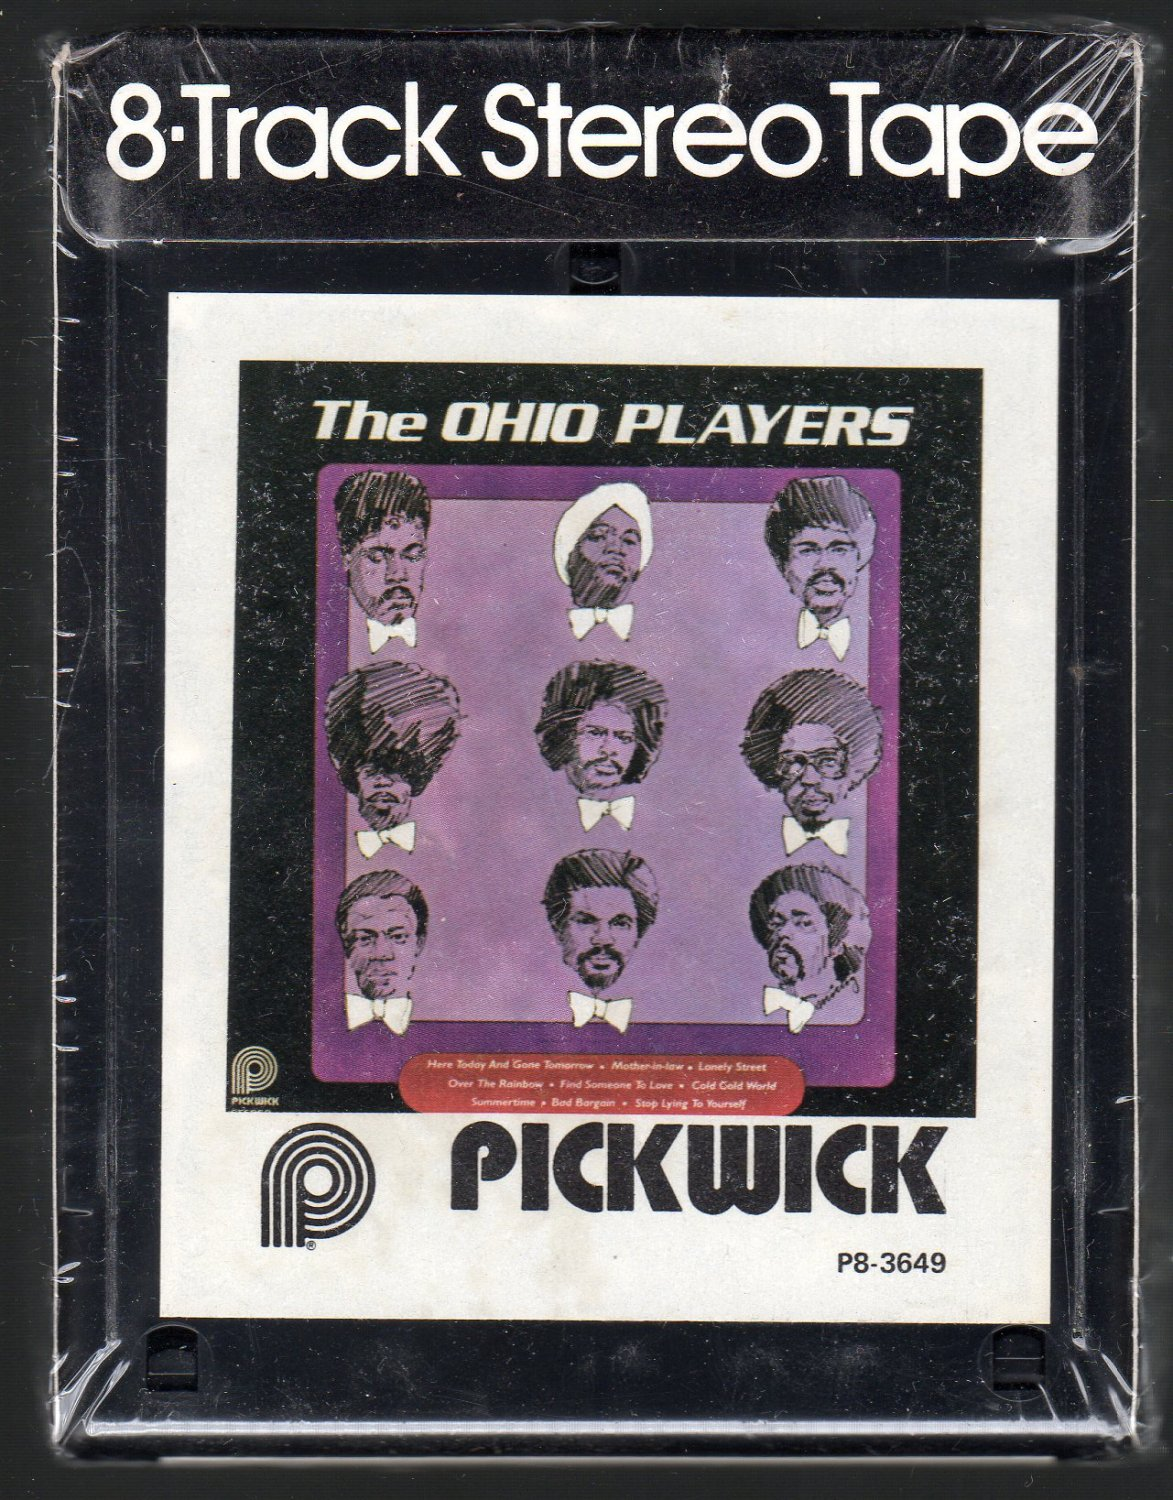 The Ohio Players - The Ohio Players PICKWICK Sealed 8-track tape